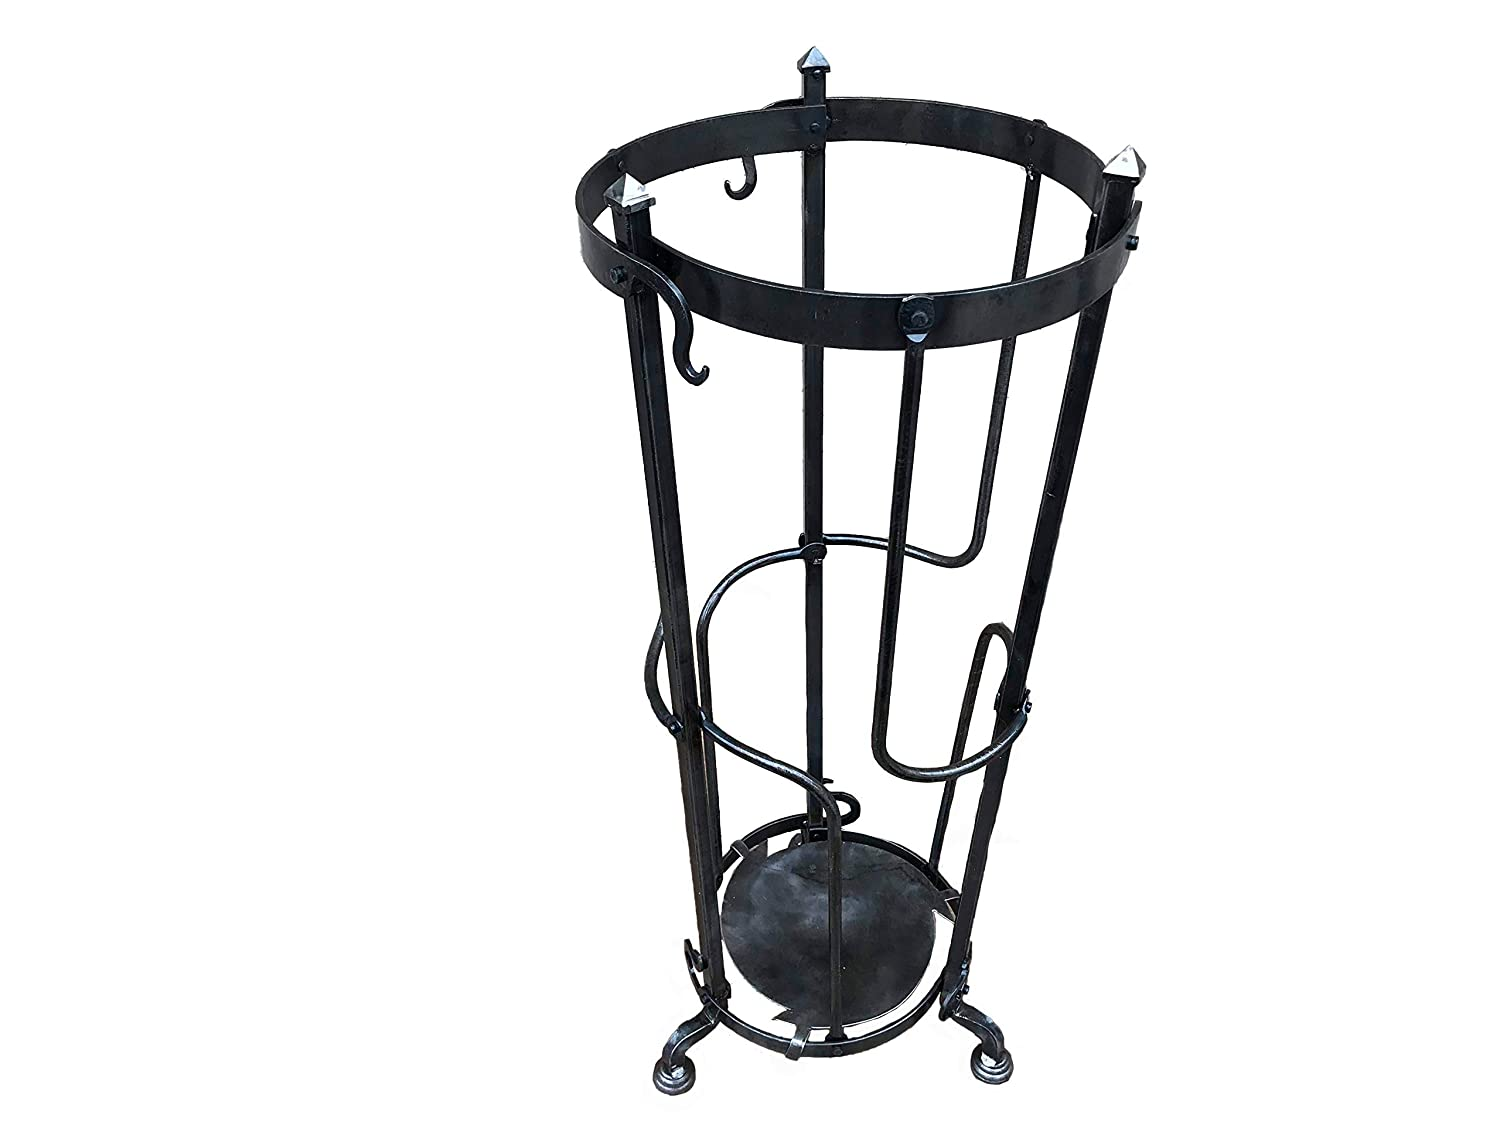 Umbrella holder umbrella Max 42% OFF Clearance SALE Limited time stand stick s cane